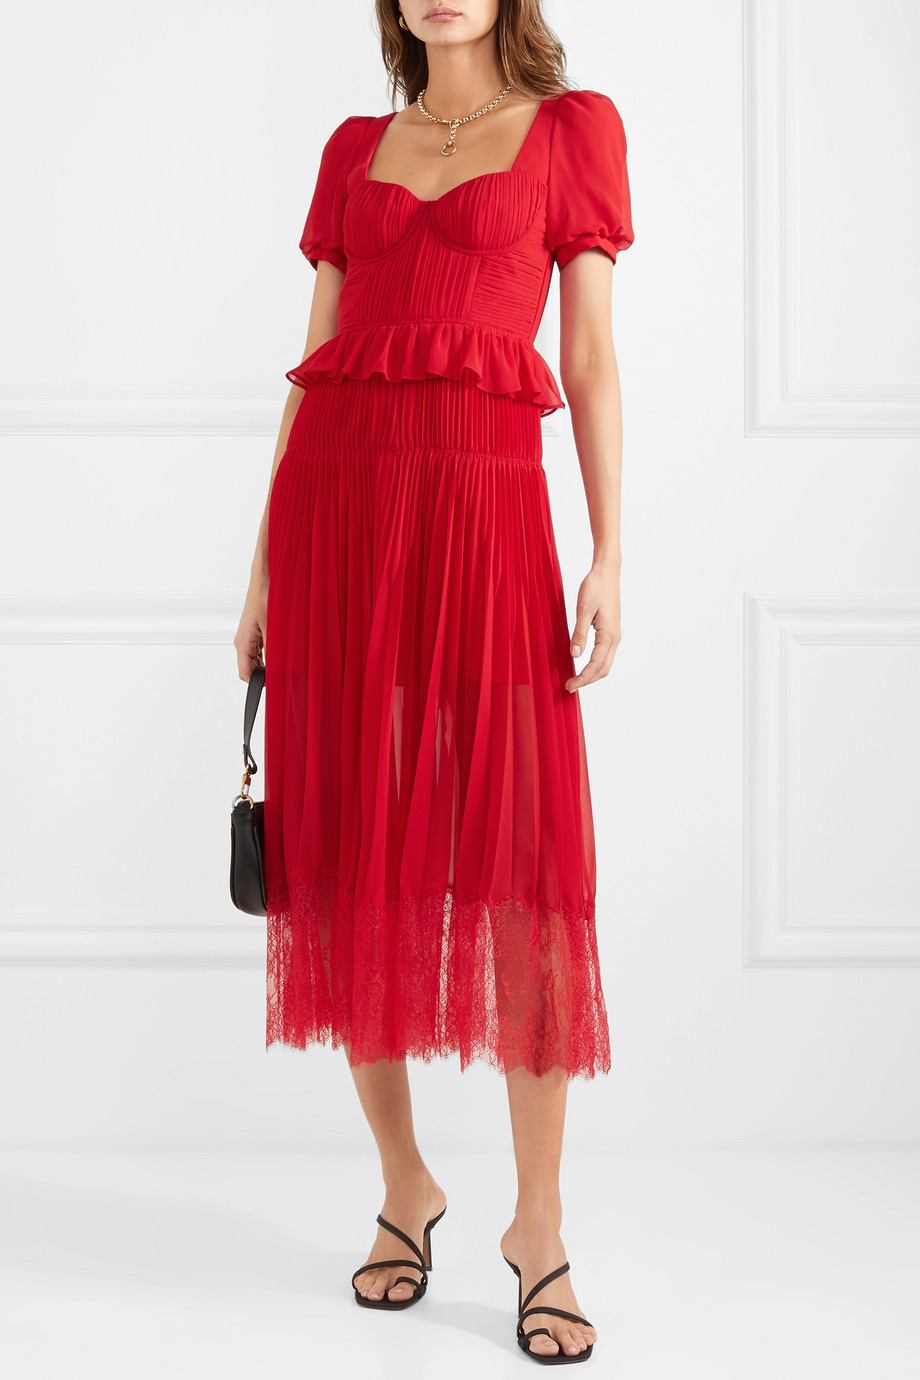 Your Go To Outfit Guide For Casual Weddings This Summer Refinery29 Chiffon Midi Dress Red Midi Dress Dresses [ 1380 x 920 Pixel ]